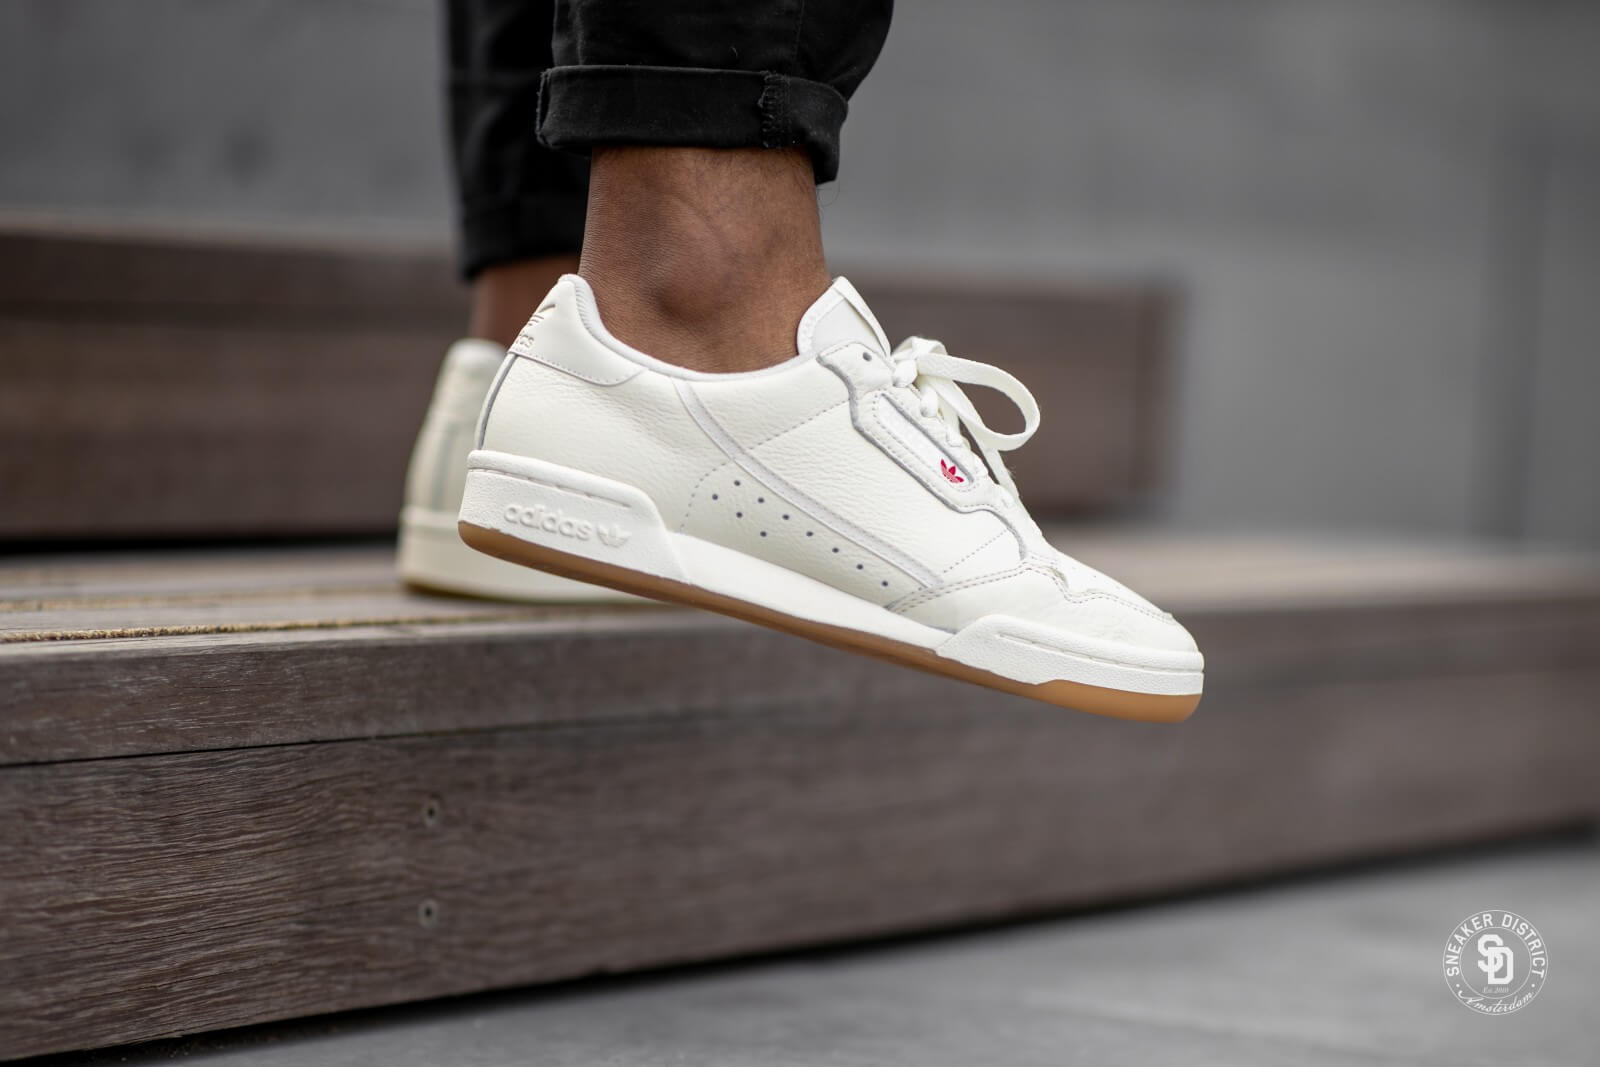 Adidas Continental 80 Off White/Raw White - BD7975